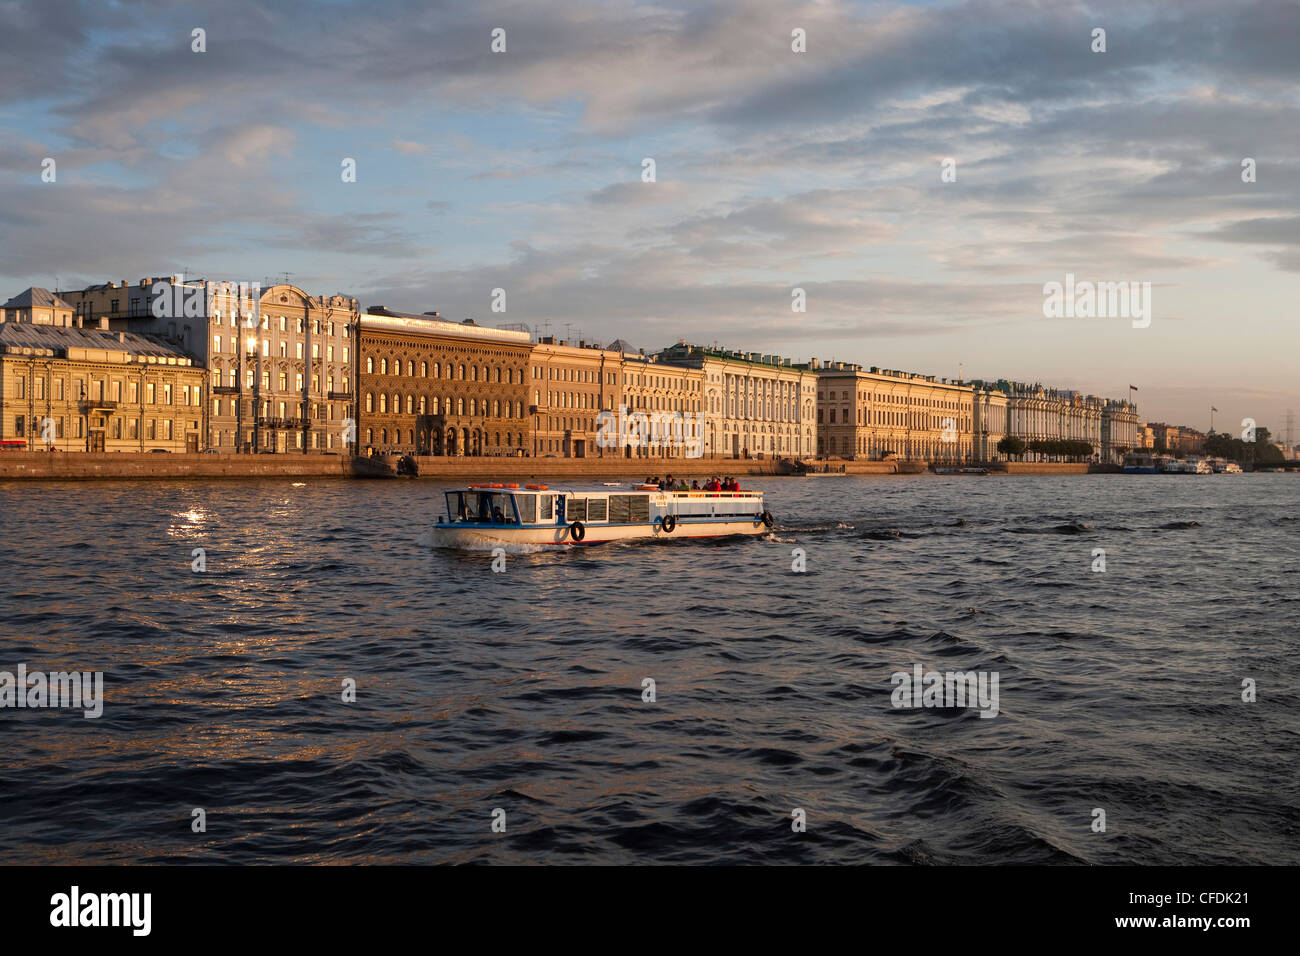 Sightseeing boat excursion on Neva river, St. Petersburg, Russia - Stock Image